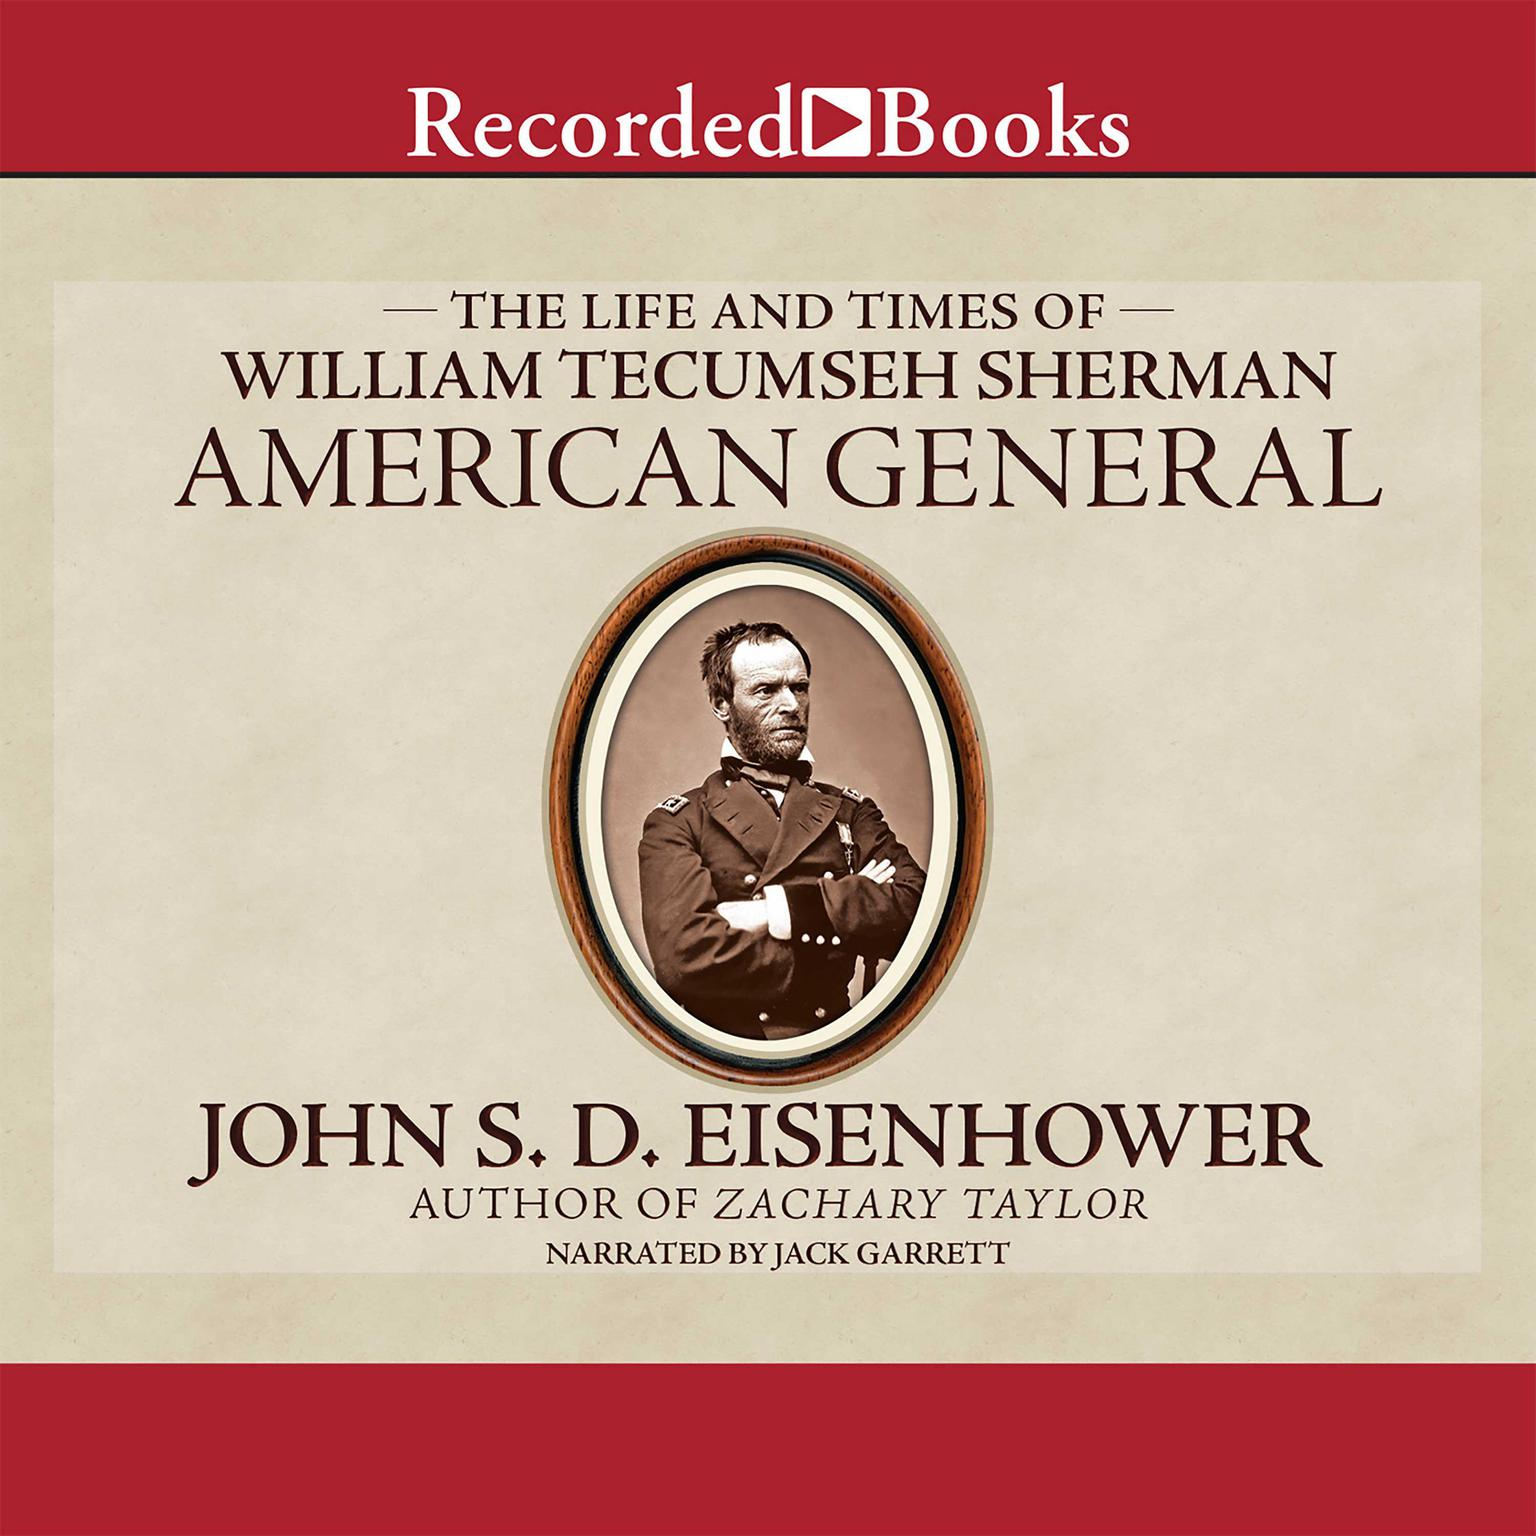 the life and military campaigns of william tecumseh sherman Life of wm tecumseh sherman  major general william t sherman & his campaigns antique i believe it is a  william tecumseh sherman engraving hb.